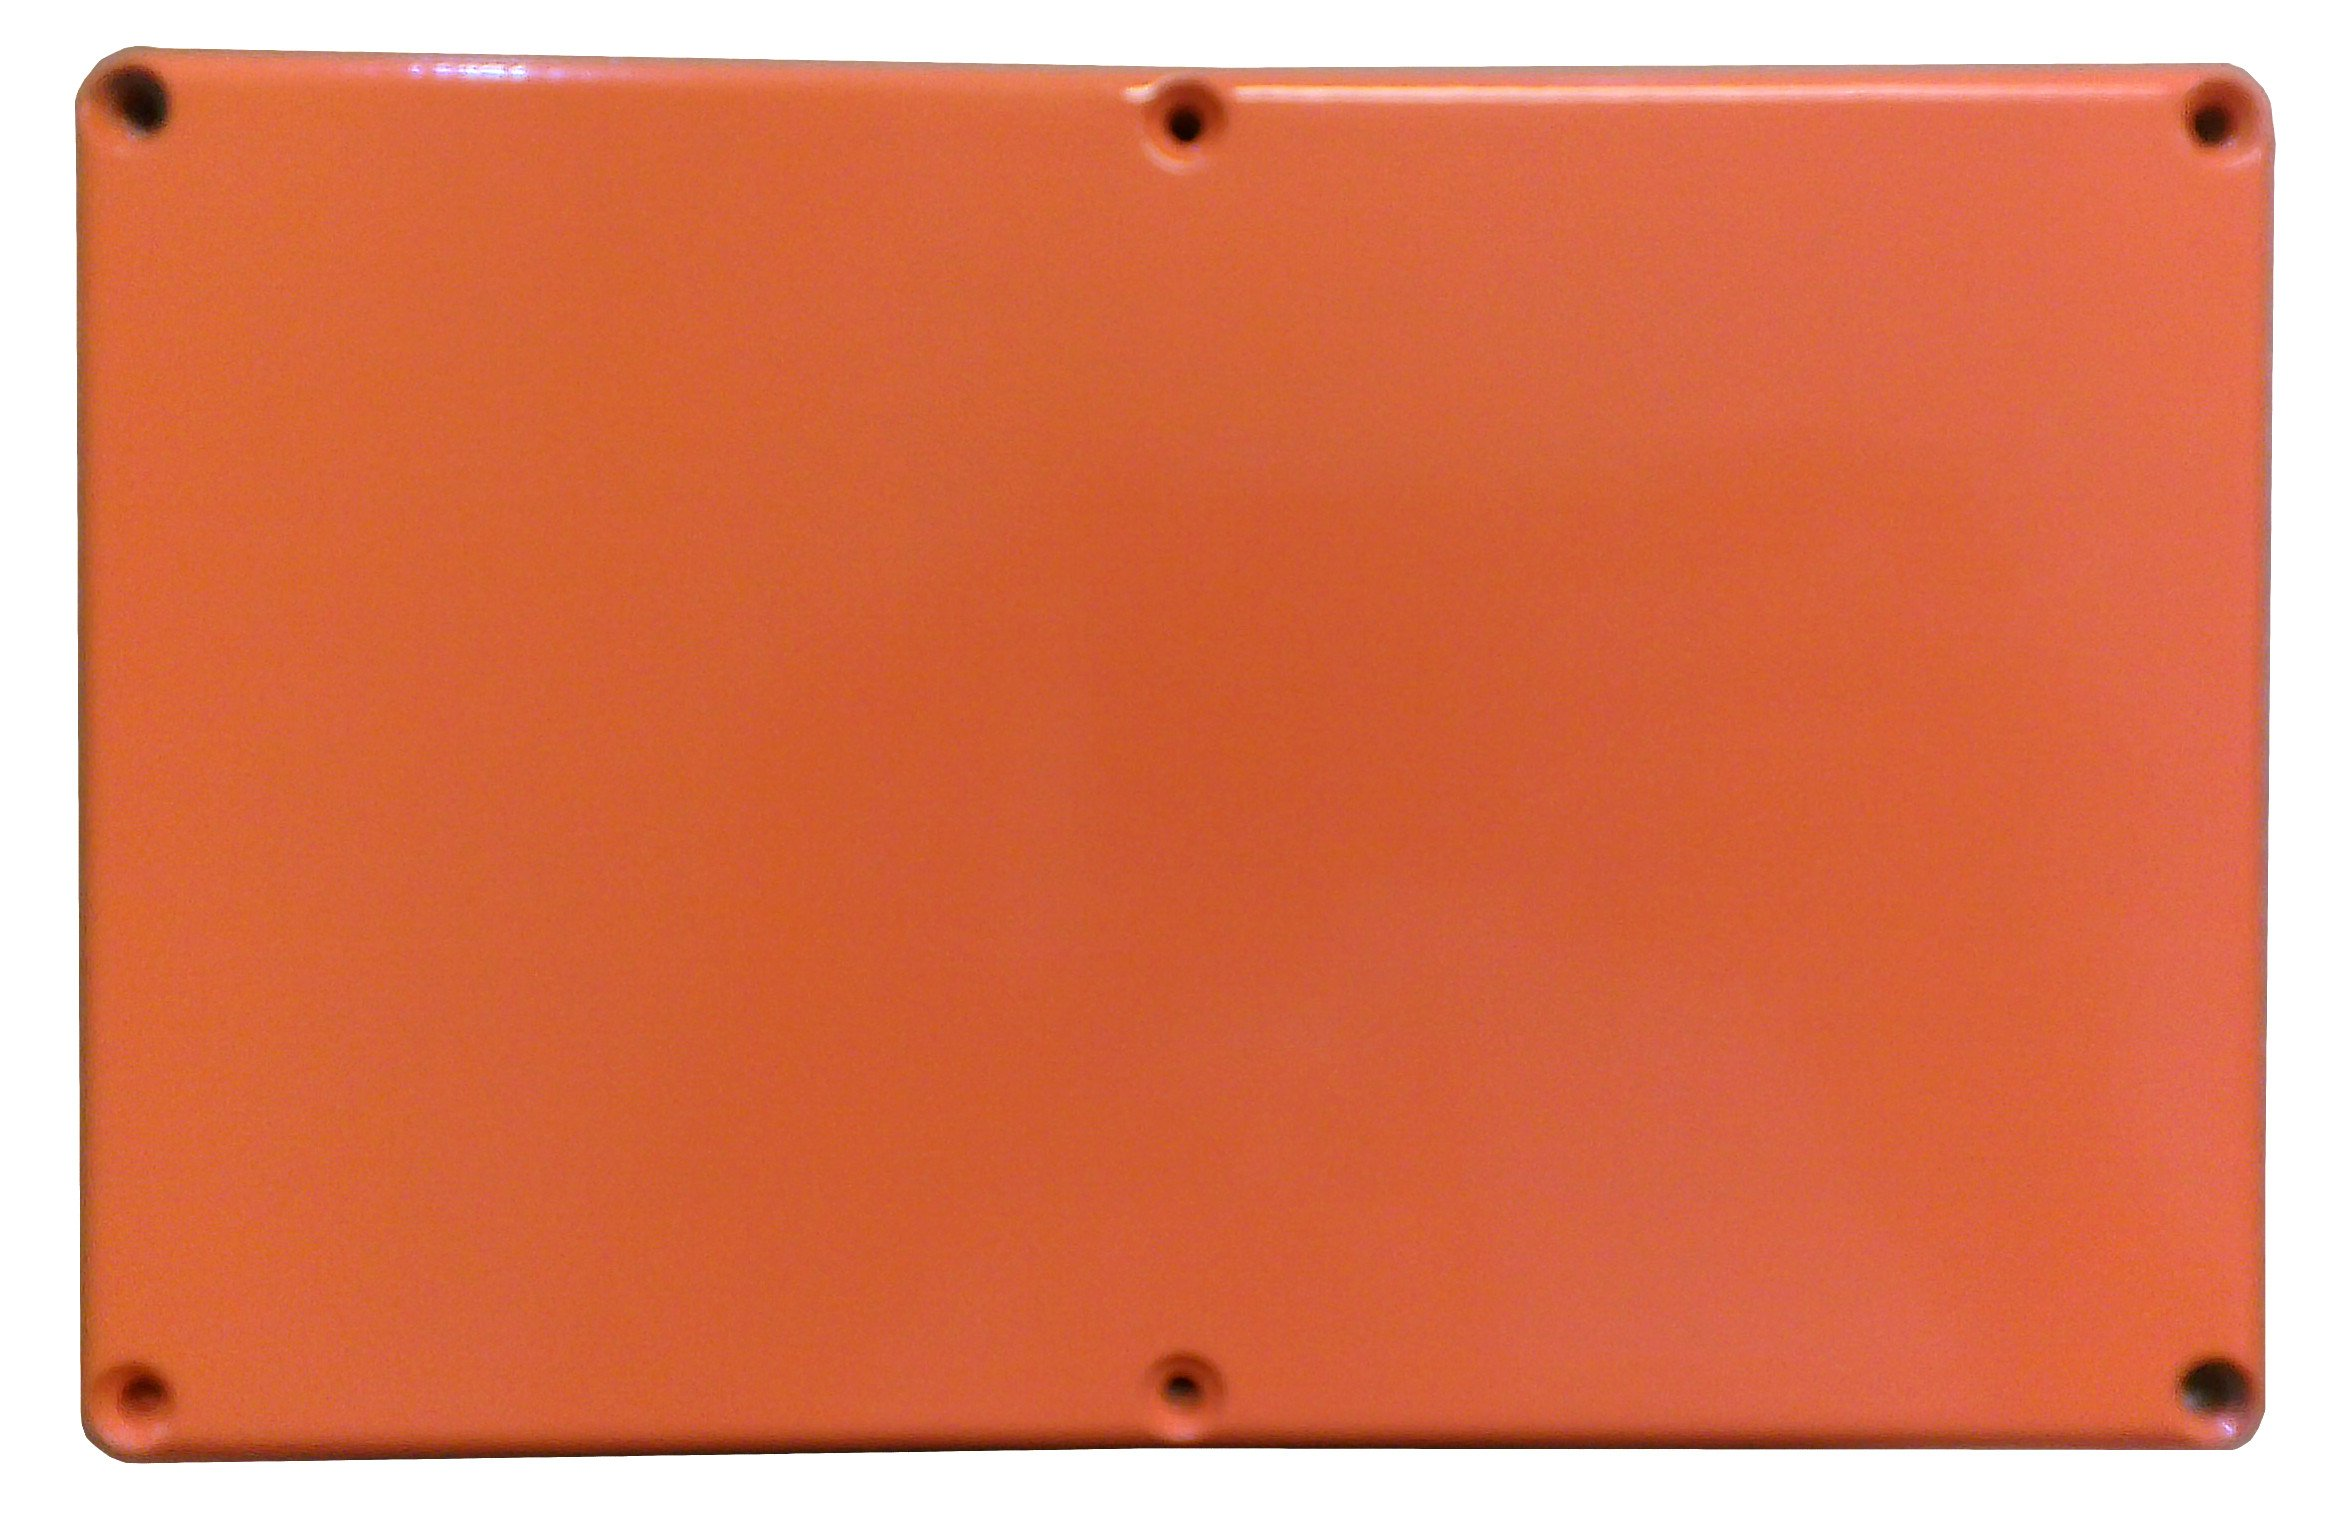 Hammond 1590EOR Orange Diecast Aluminum Enclosure -- Inches (7.38'' x 4.70'' x 3.07'') mm (188mm x 120mm x 78mm)